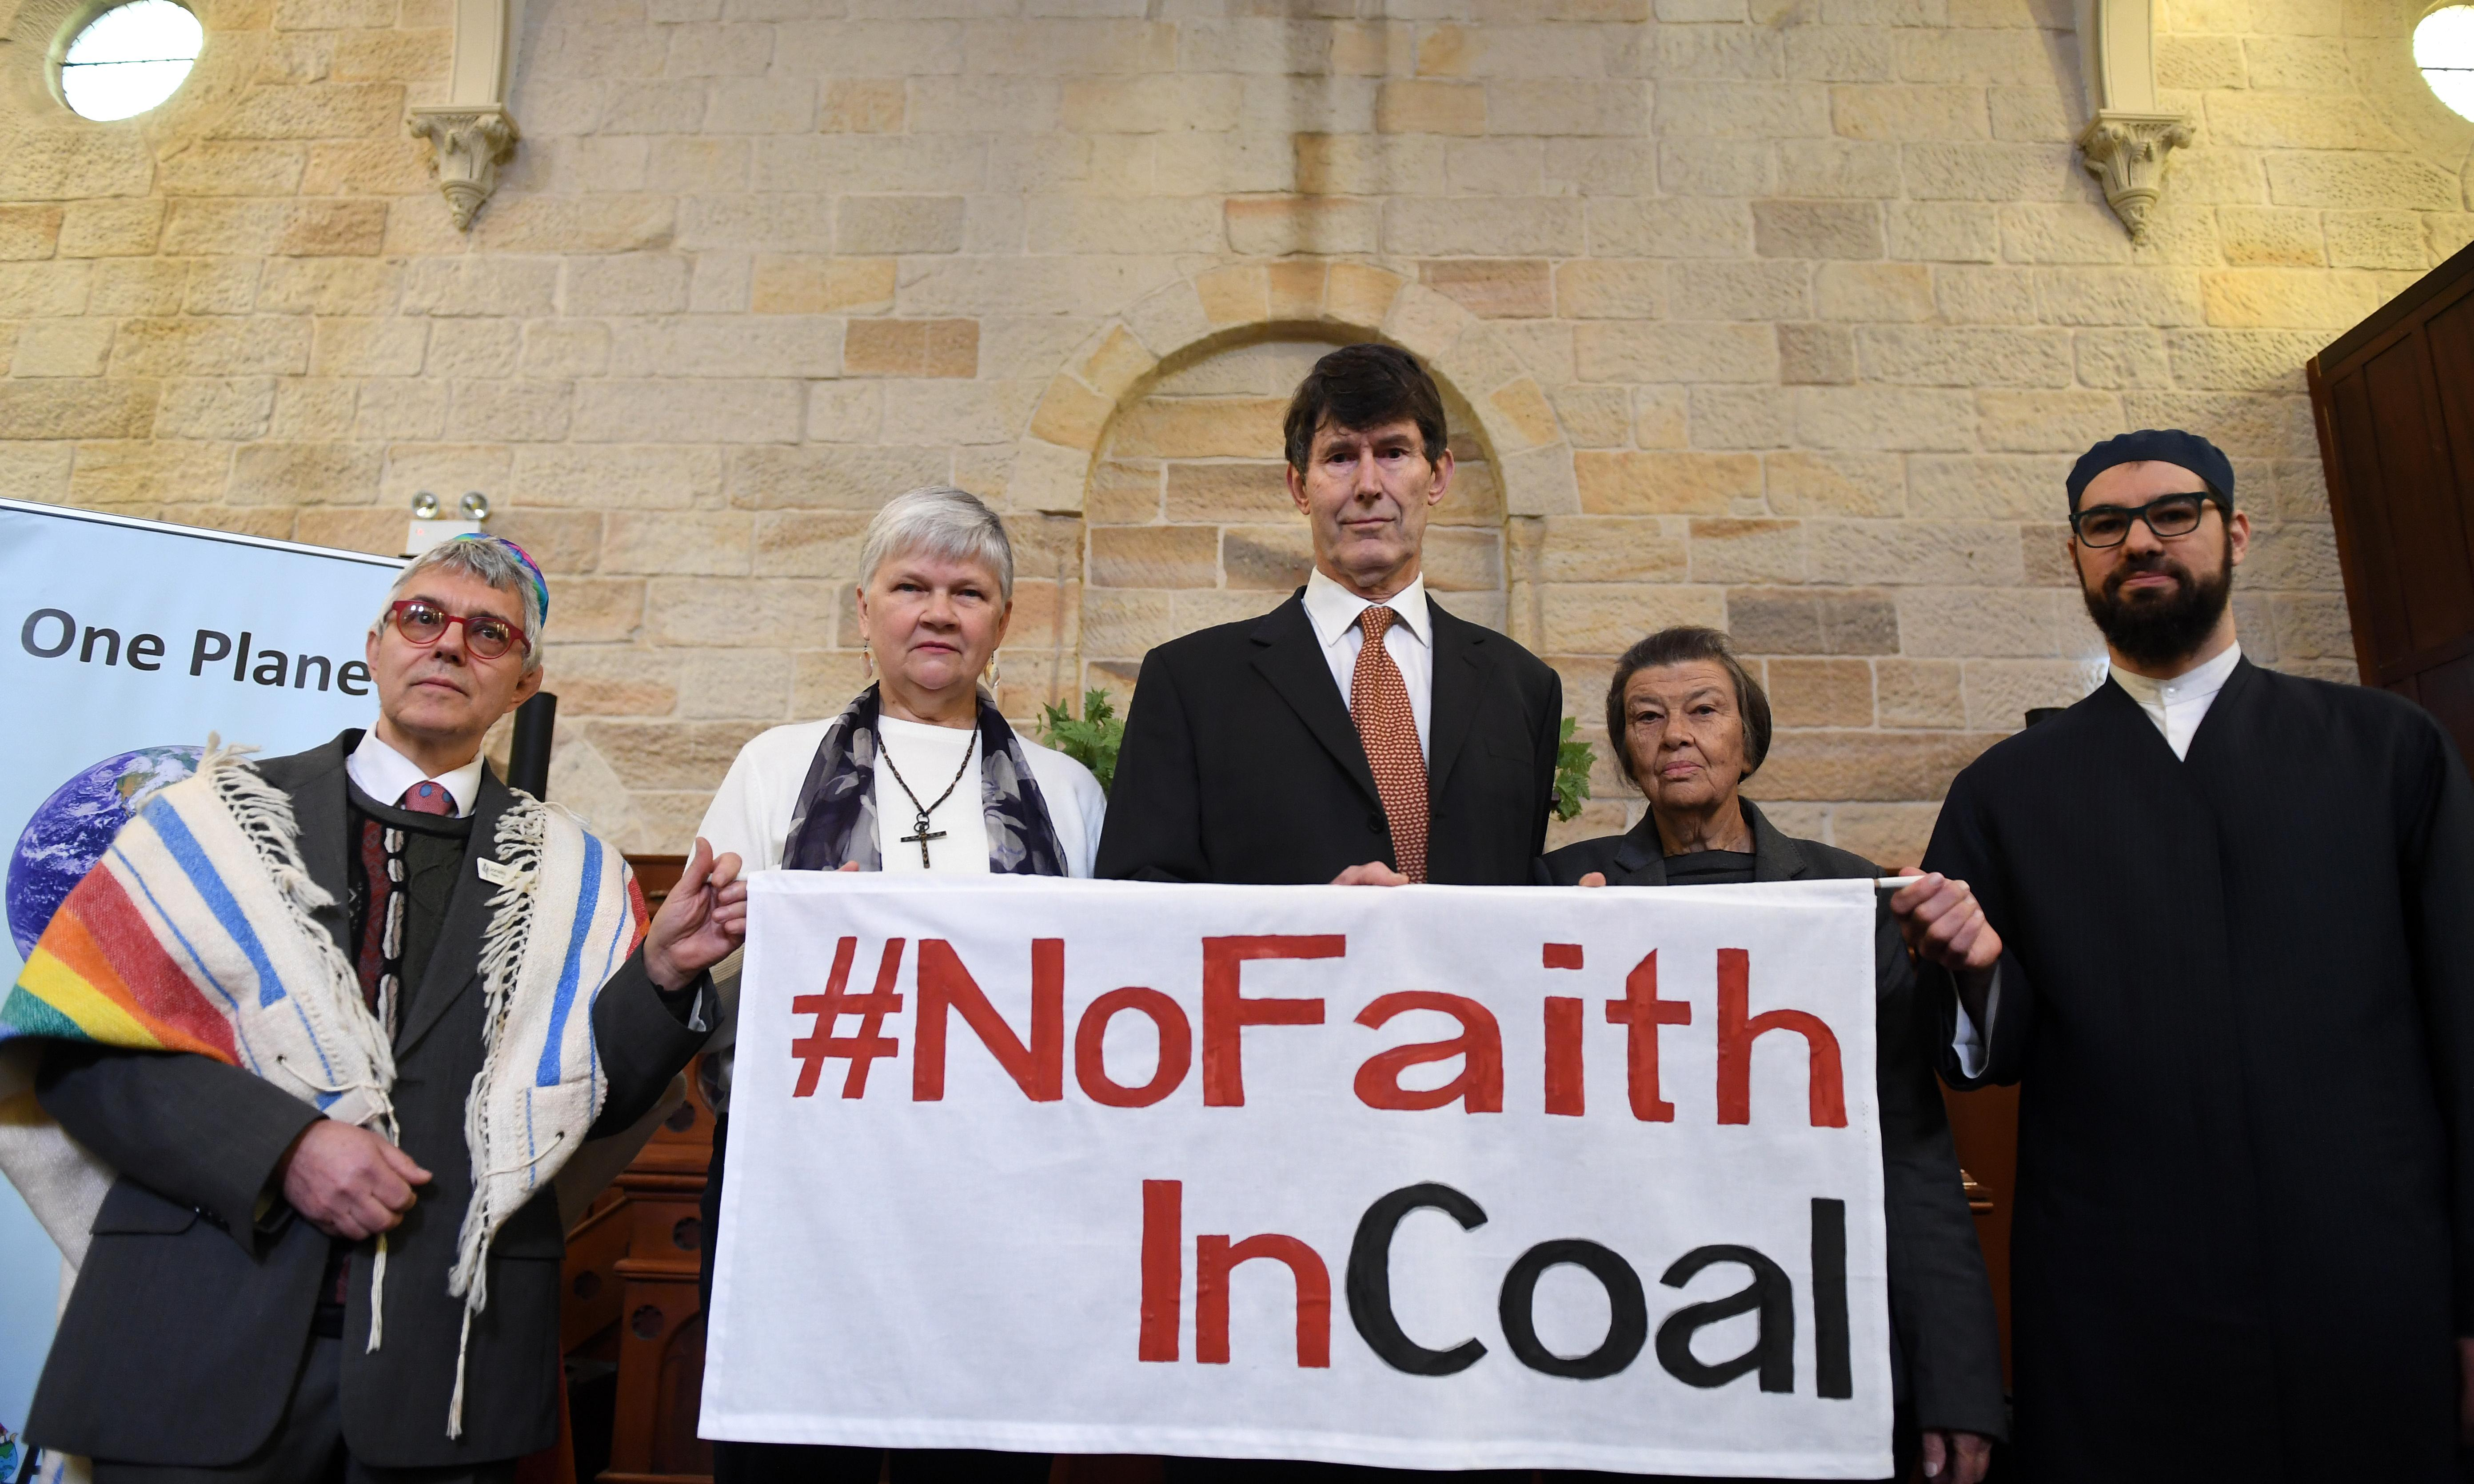 'No faith in coal': religious leaders urge Scott Morrison to take climate action